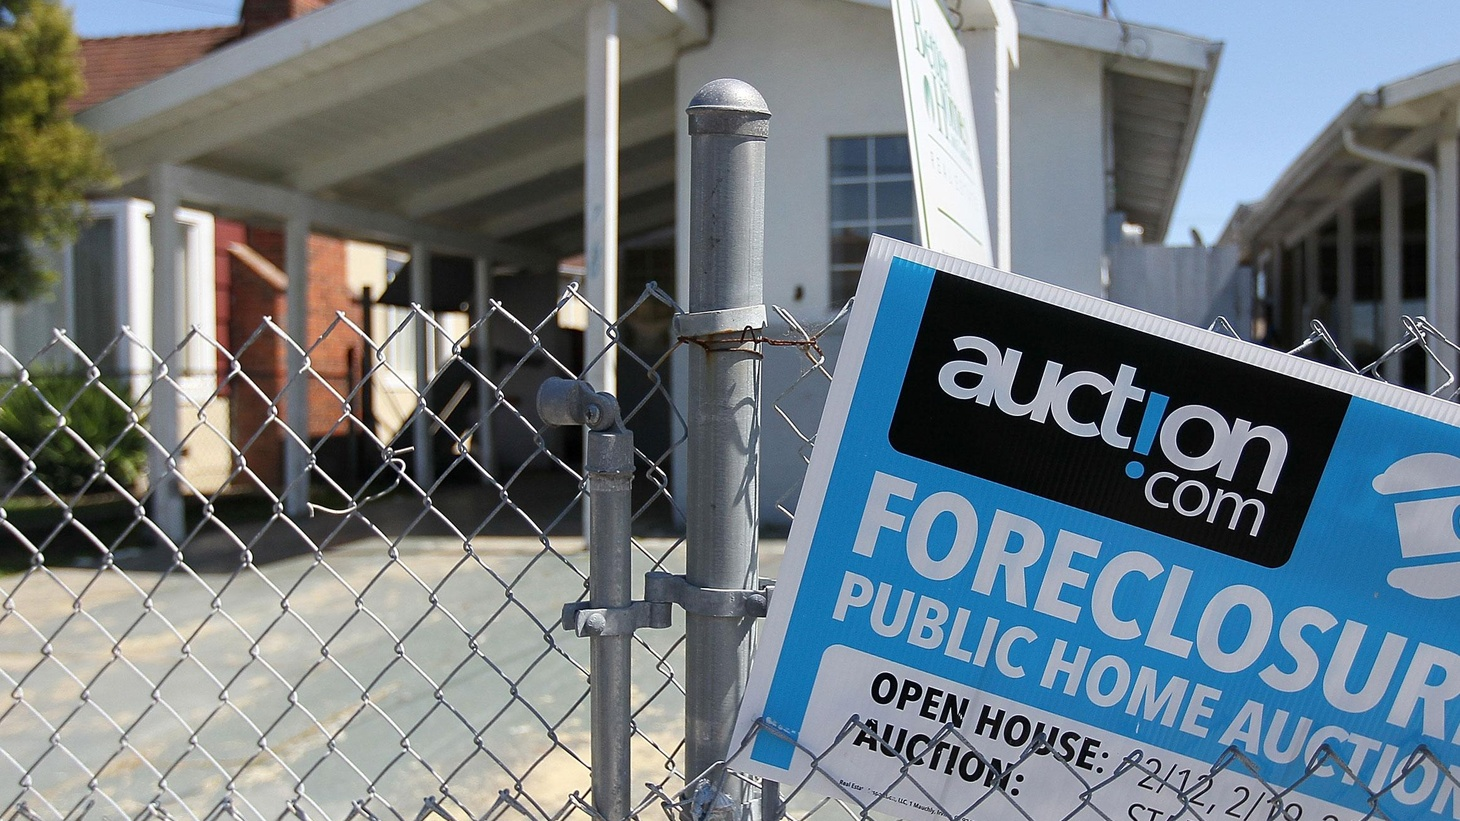 The housing crisis is anything but over, with banks still foreclosing on  millions of properties while prosecutors investigate lenders for fraud...